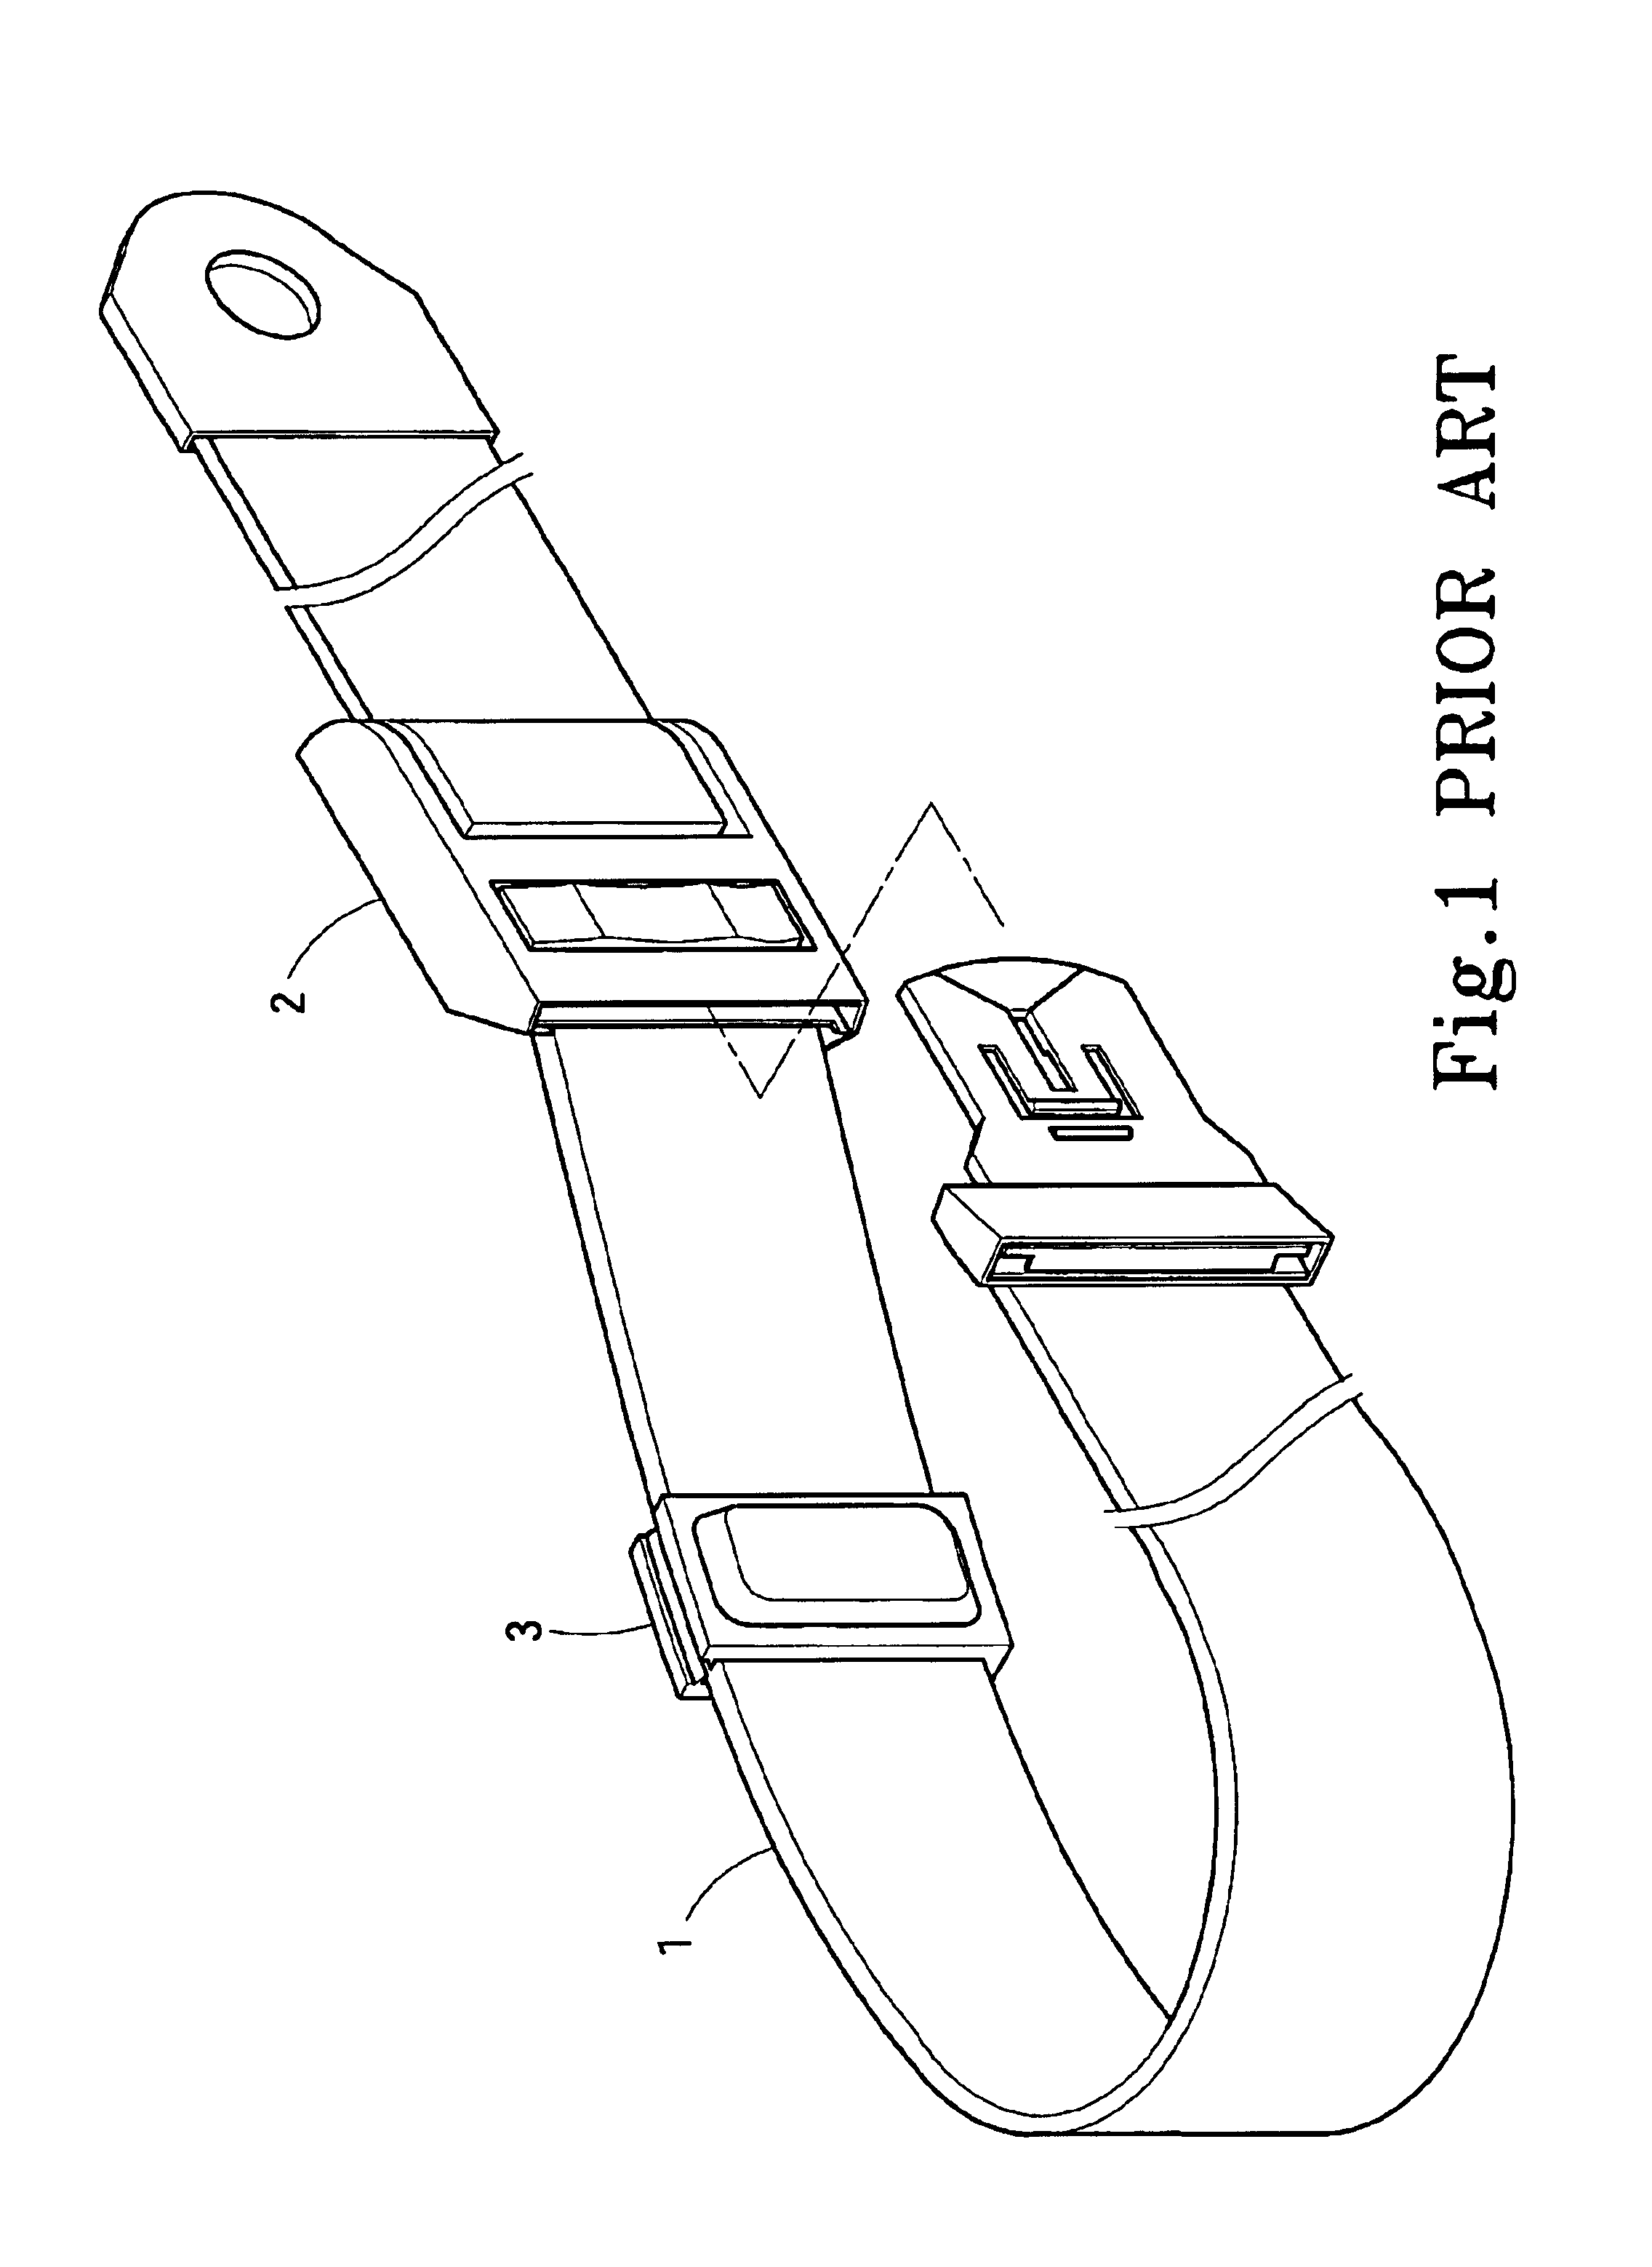 patent us6833001 - controllable tourniquet